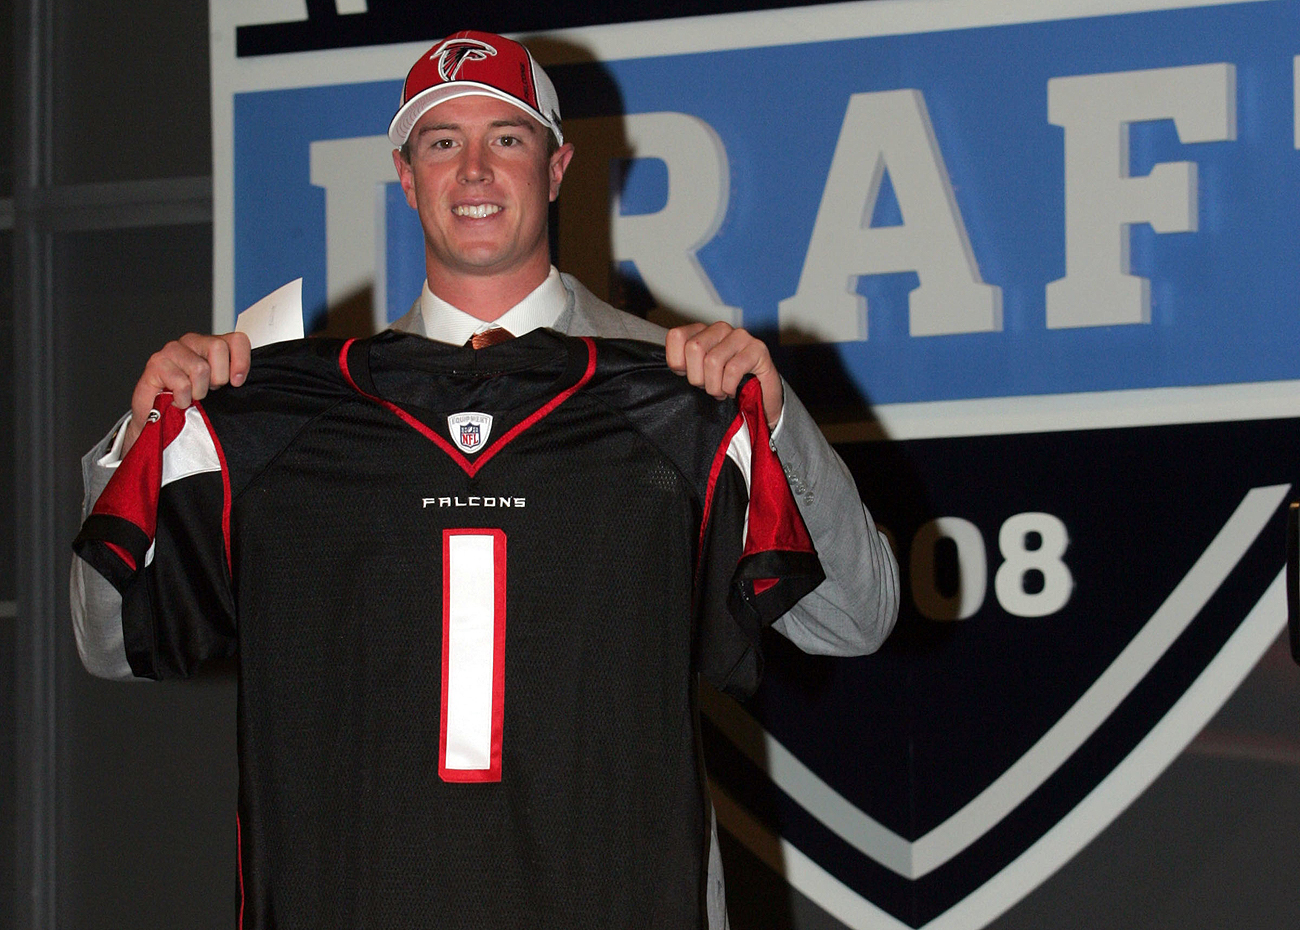 The Falcons selected Matt Ryan with the third overall pick in the 2008 draft.